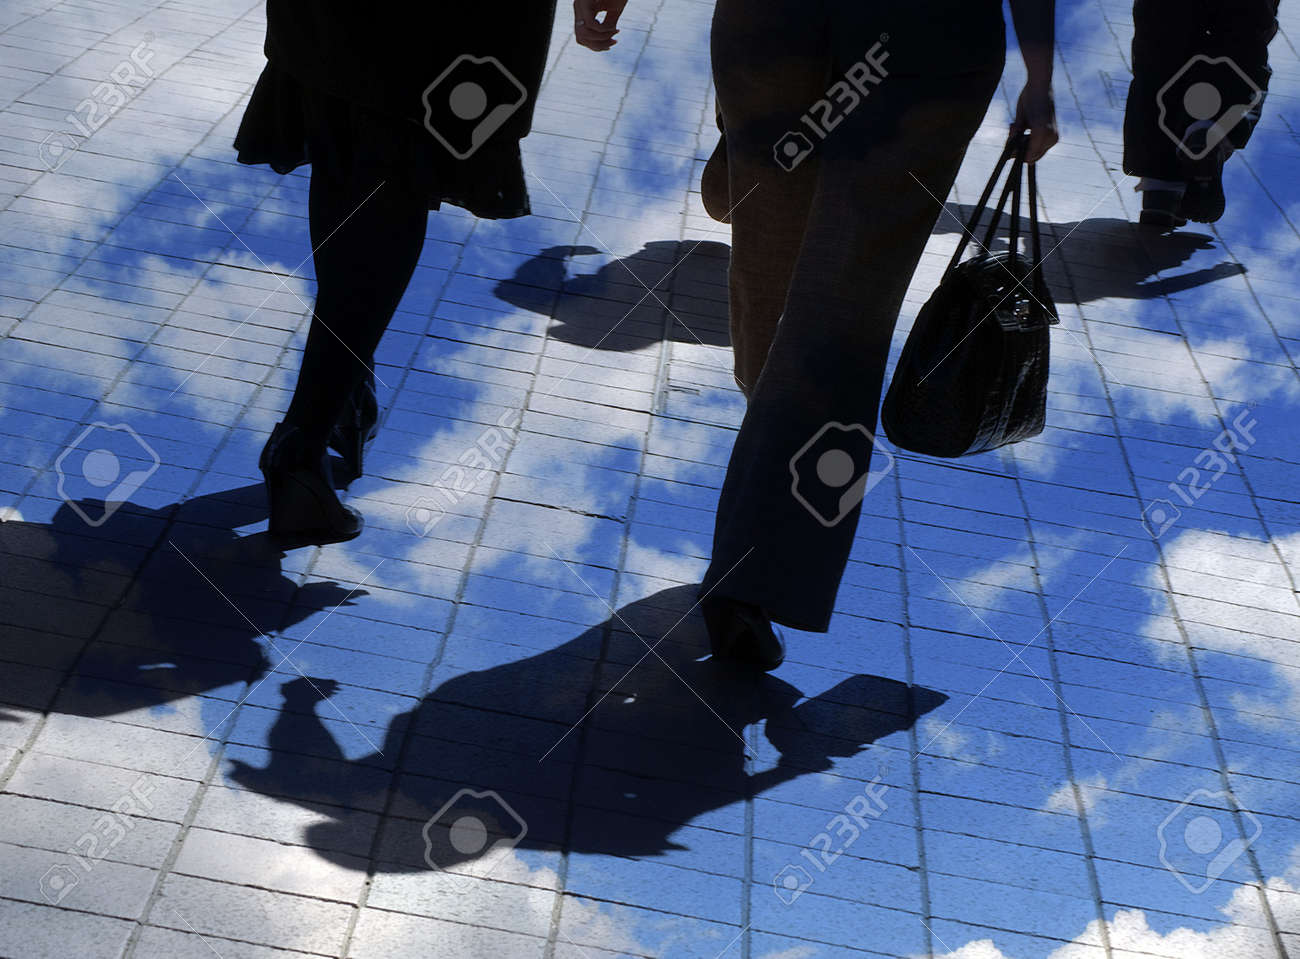 Silhouetted pedestrians in city center overlaid with clouds Stock Photo - 8392729